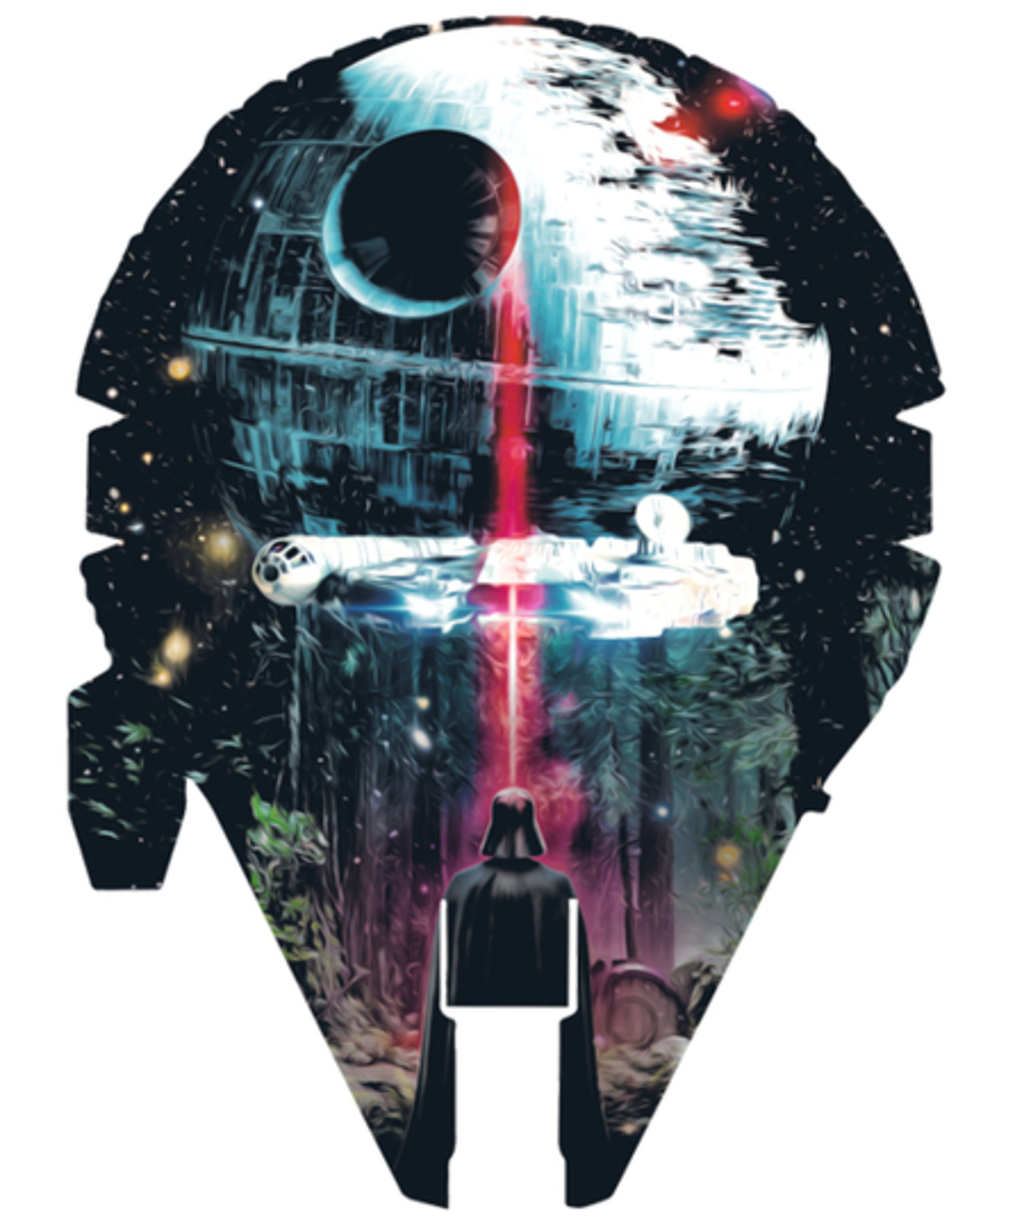 Qwertee: That's No Moon